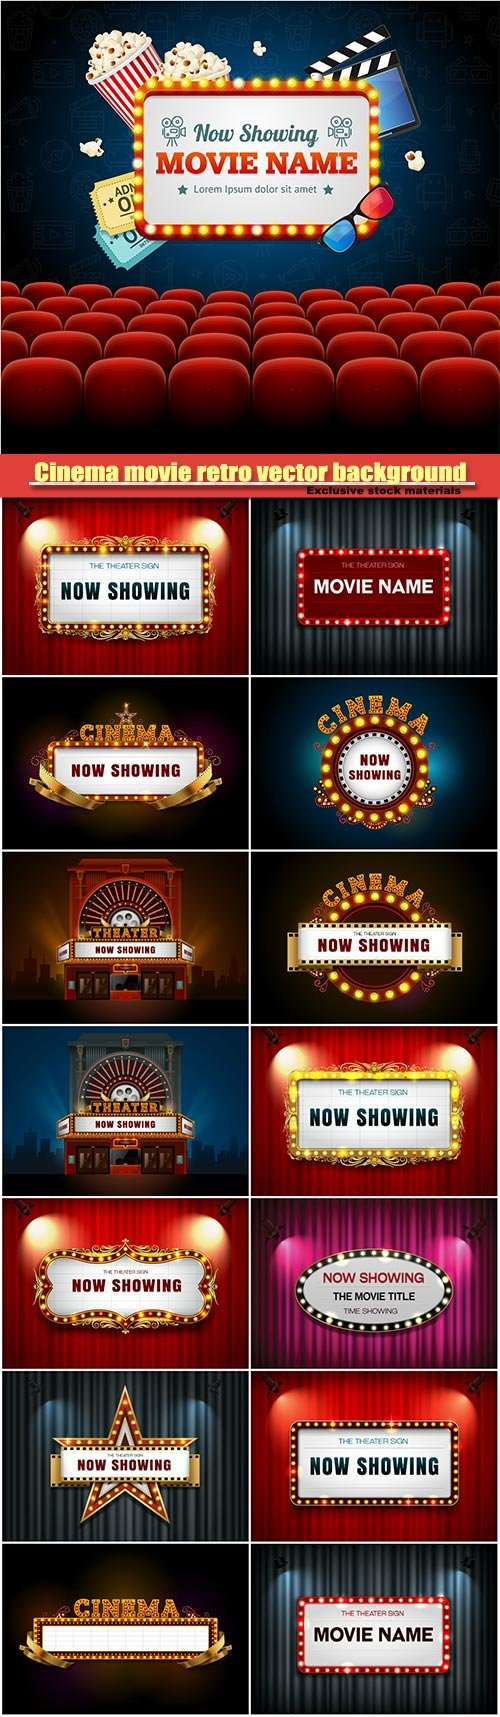 Cinema movie retro vector background